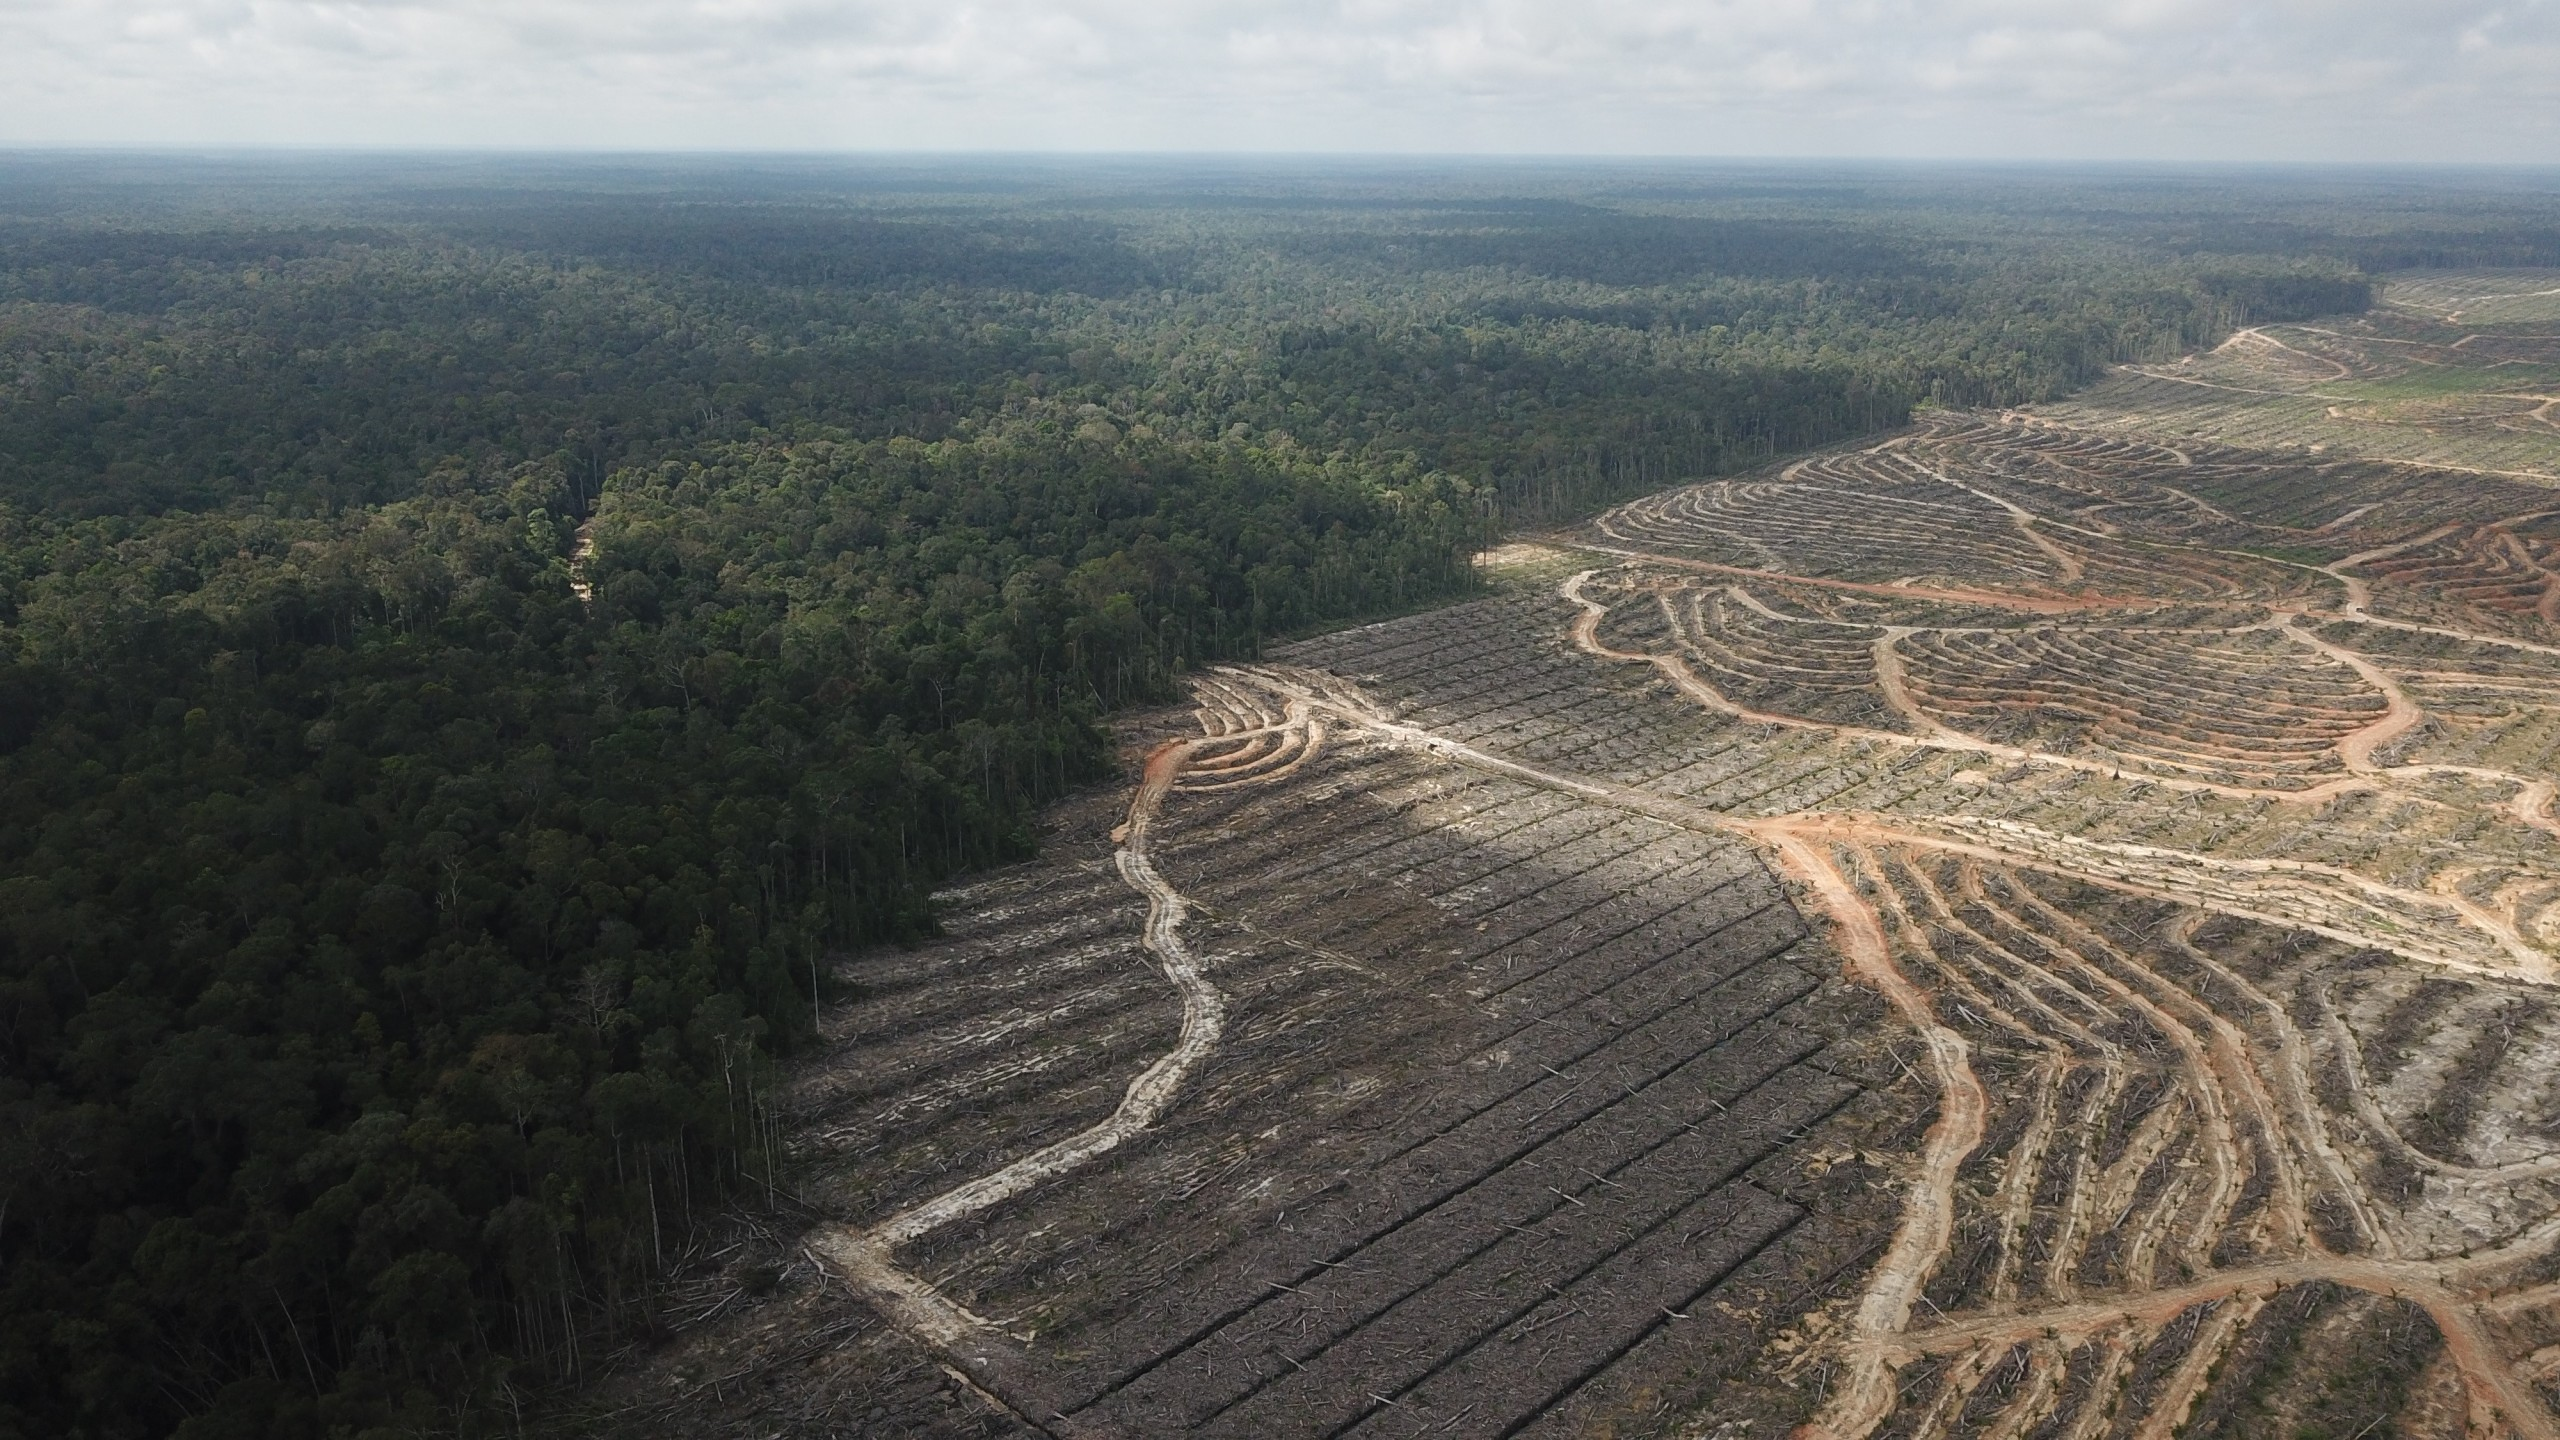 #ConflictPalmOil